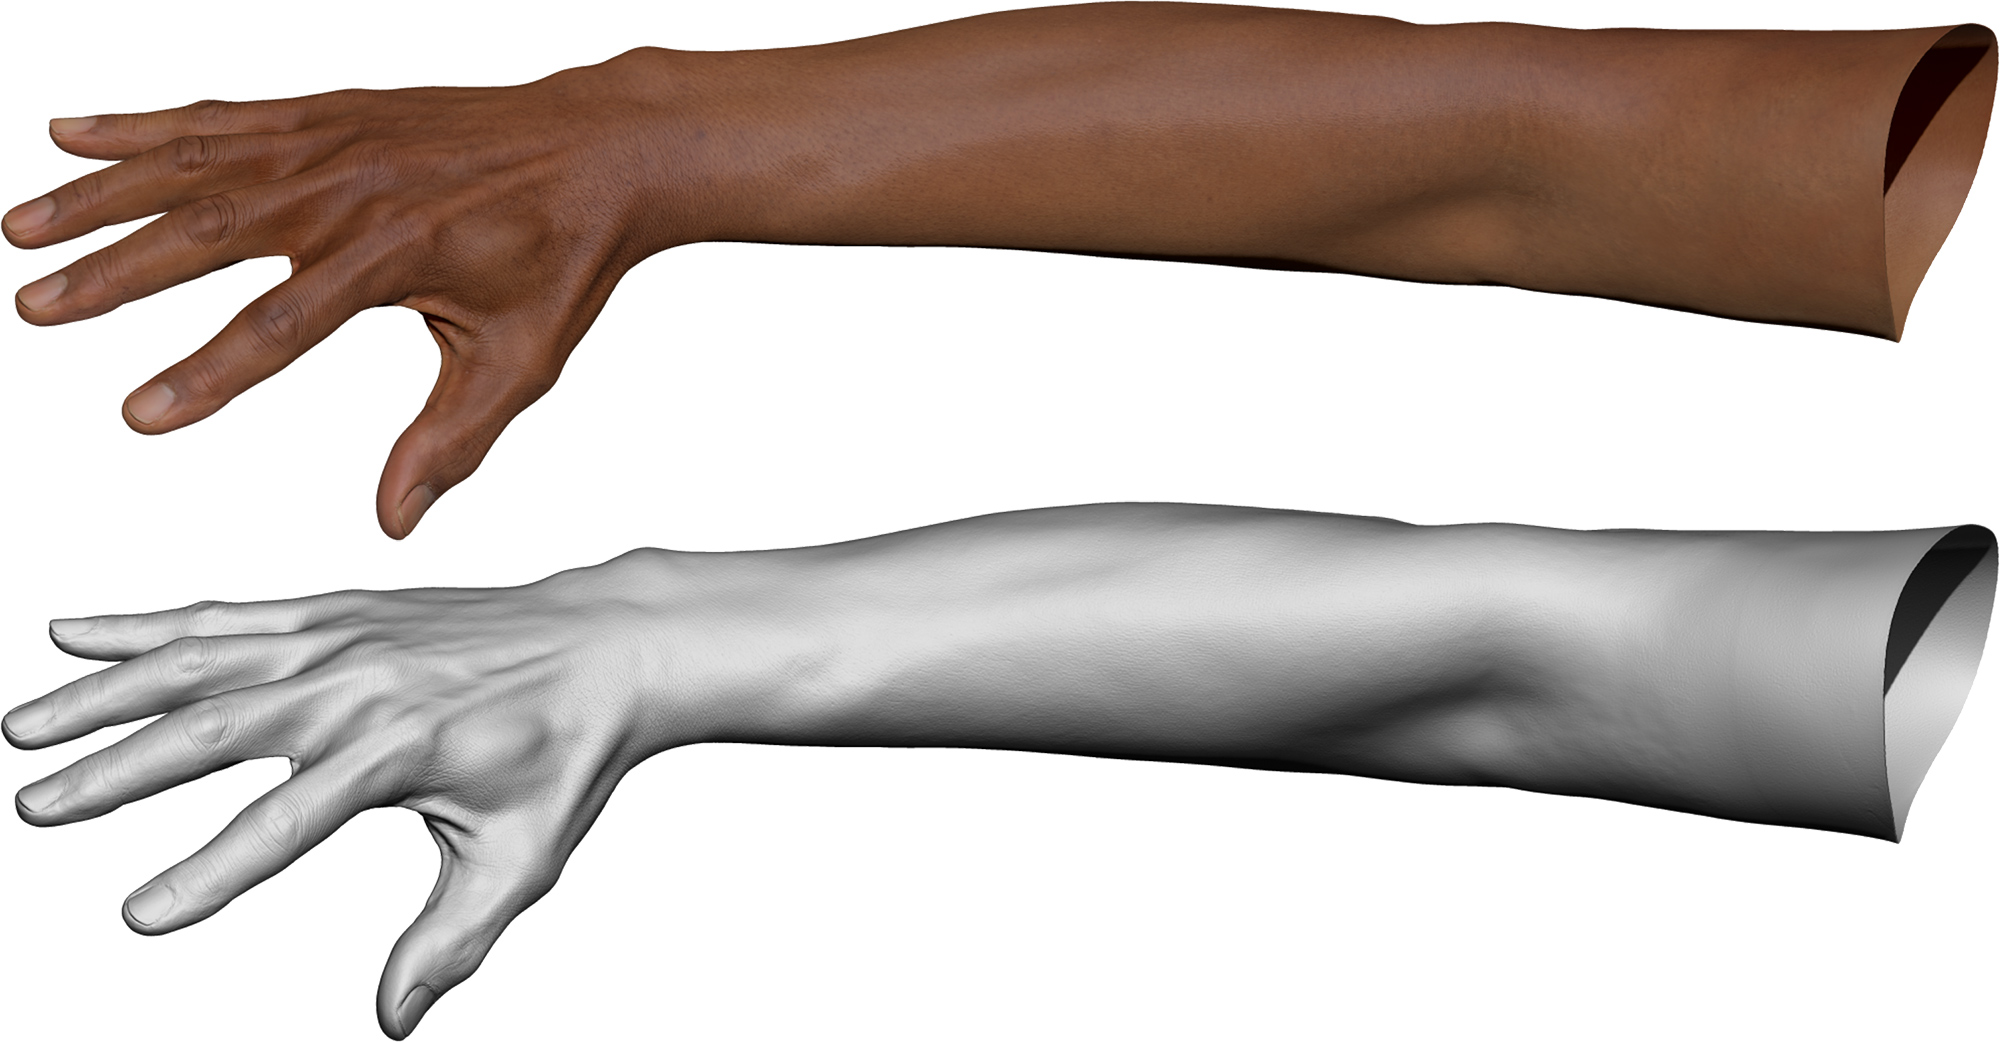 3D Hand and Arm Model with realistic texture maps